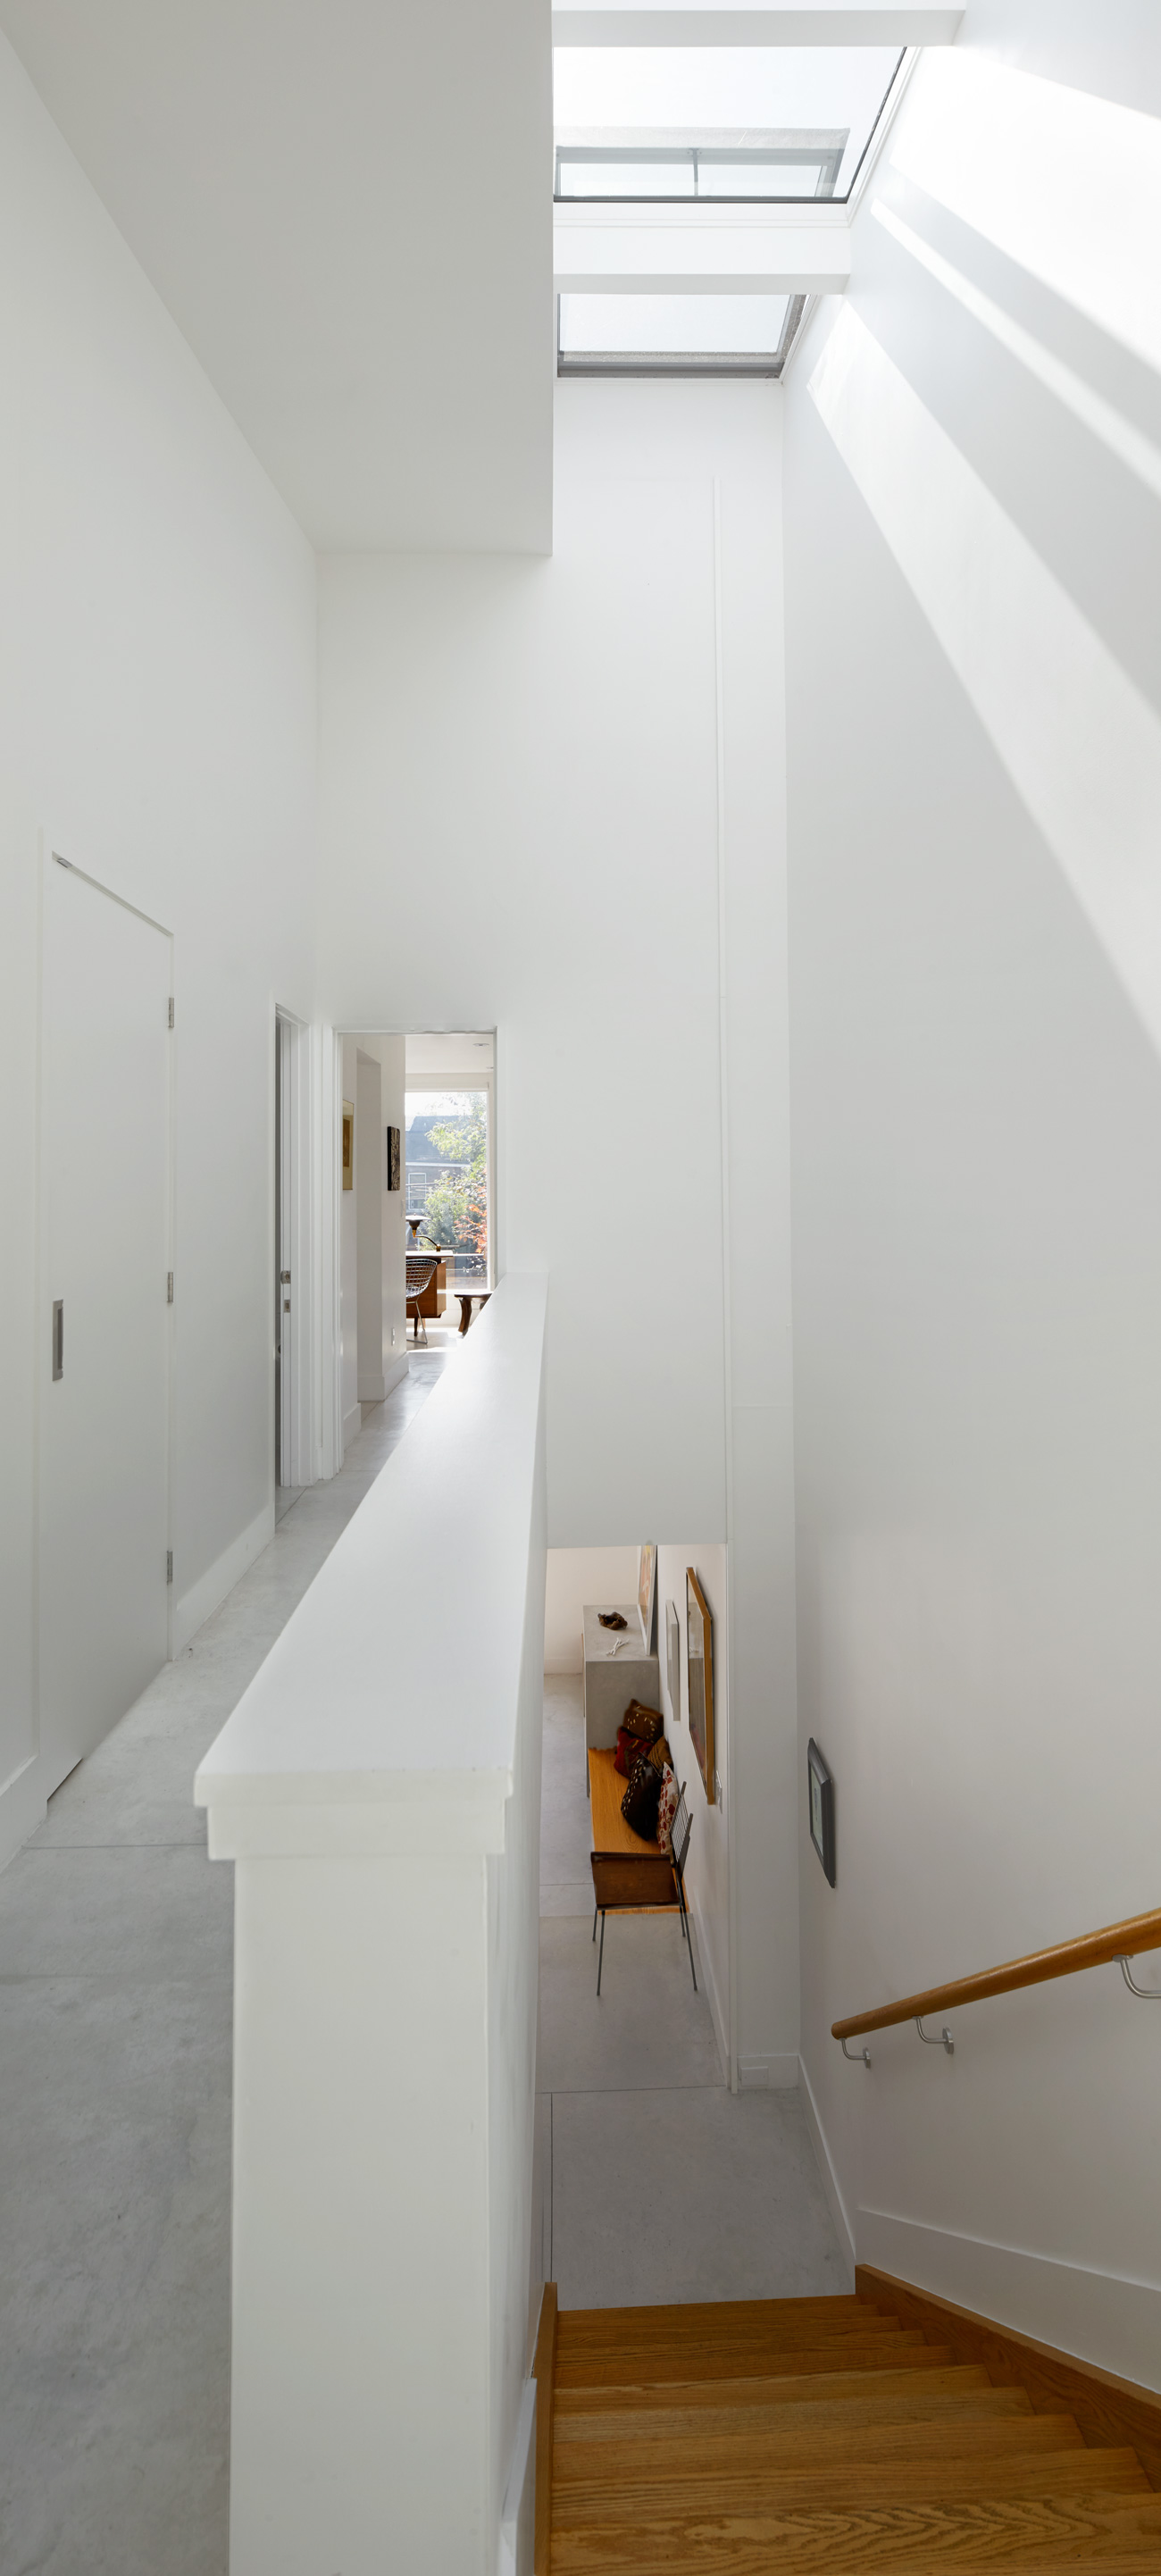 The light well spans two storeys and is capped with a series of remote-controlled windows by Velux.